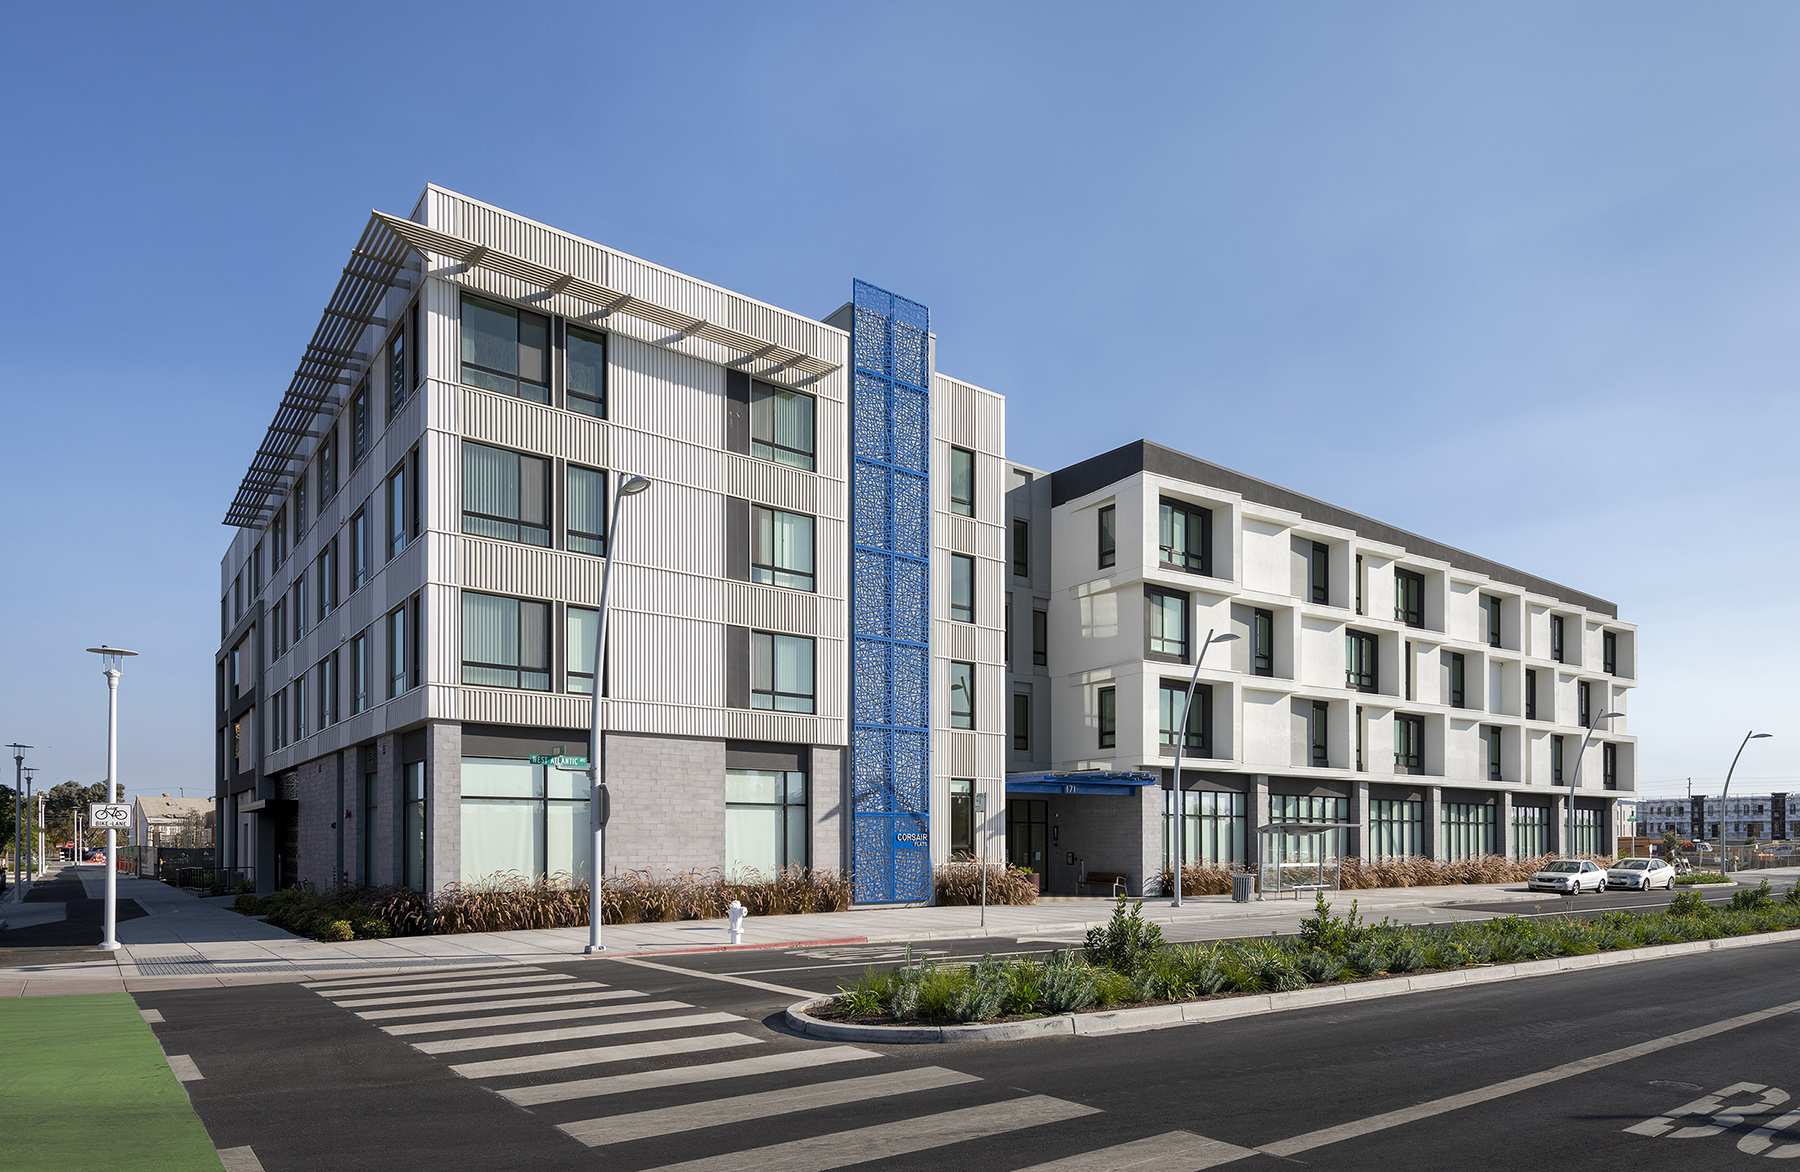 KTGY-Designed New Affordable Housing Community for Seniors Welcomes Residents at Alameda Point